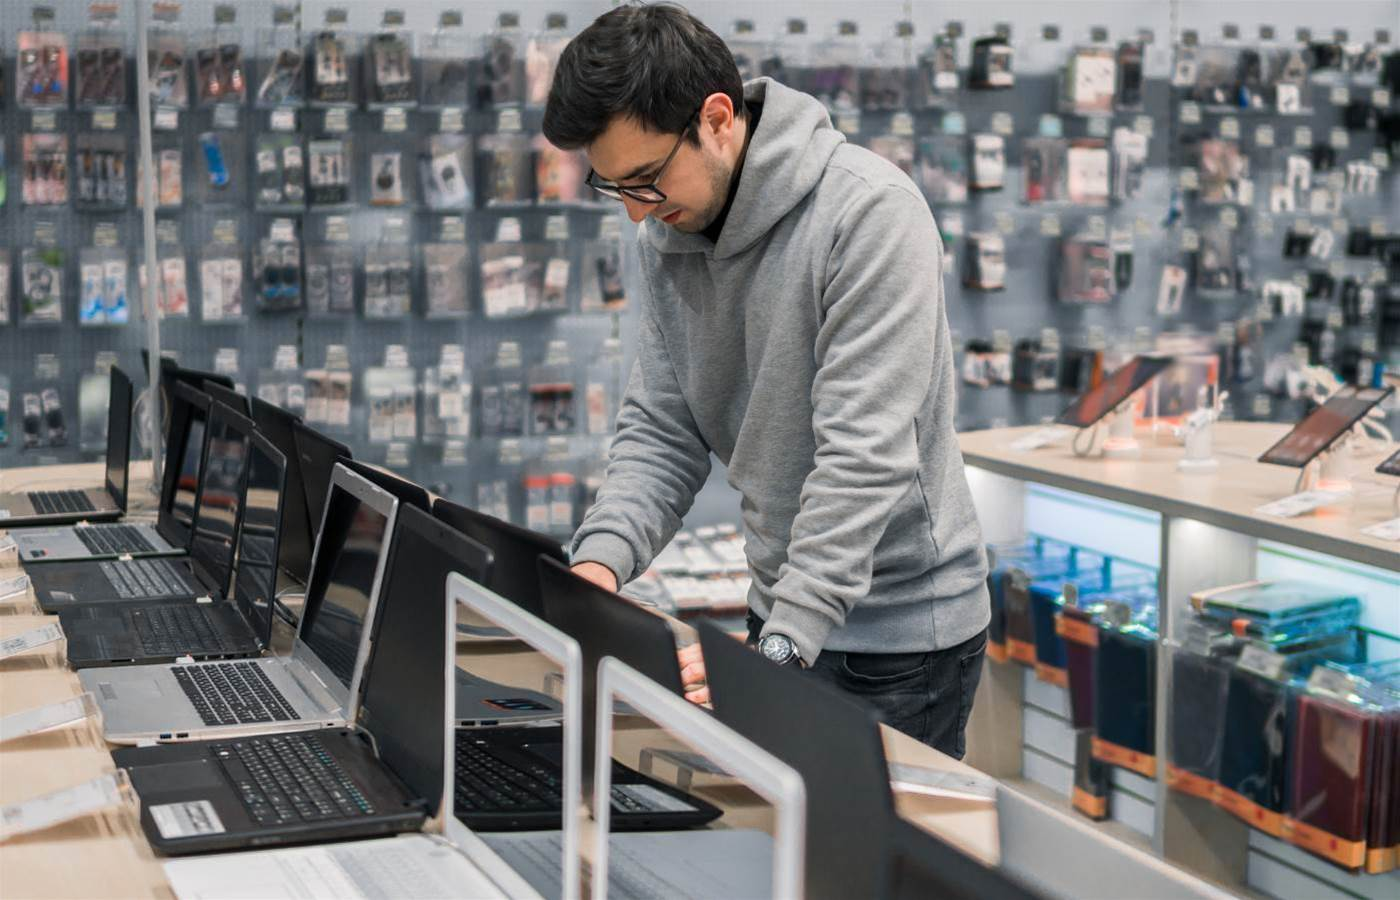 Global PC shipments get slight bump after years of decline